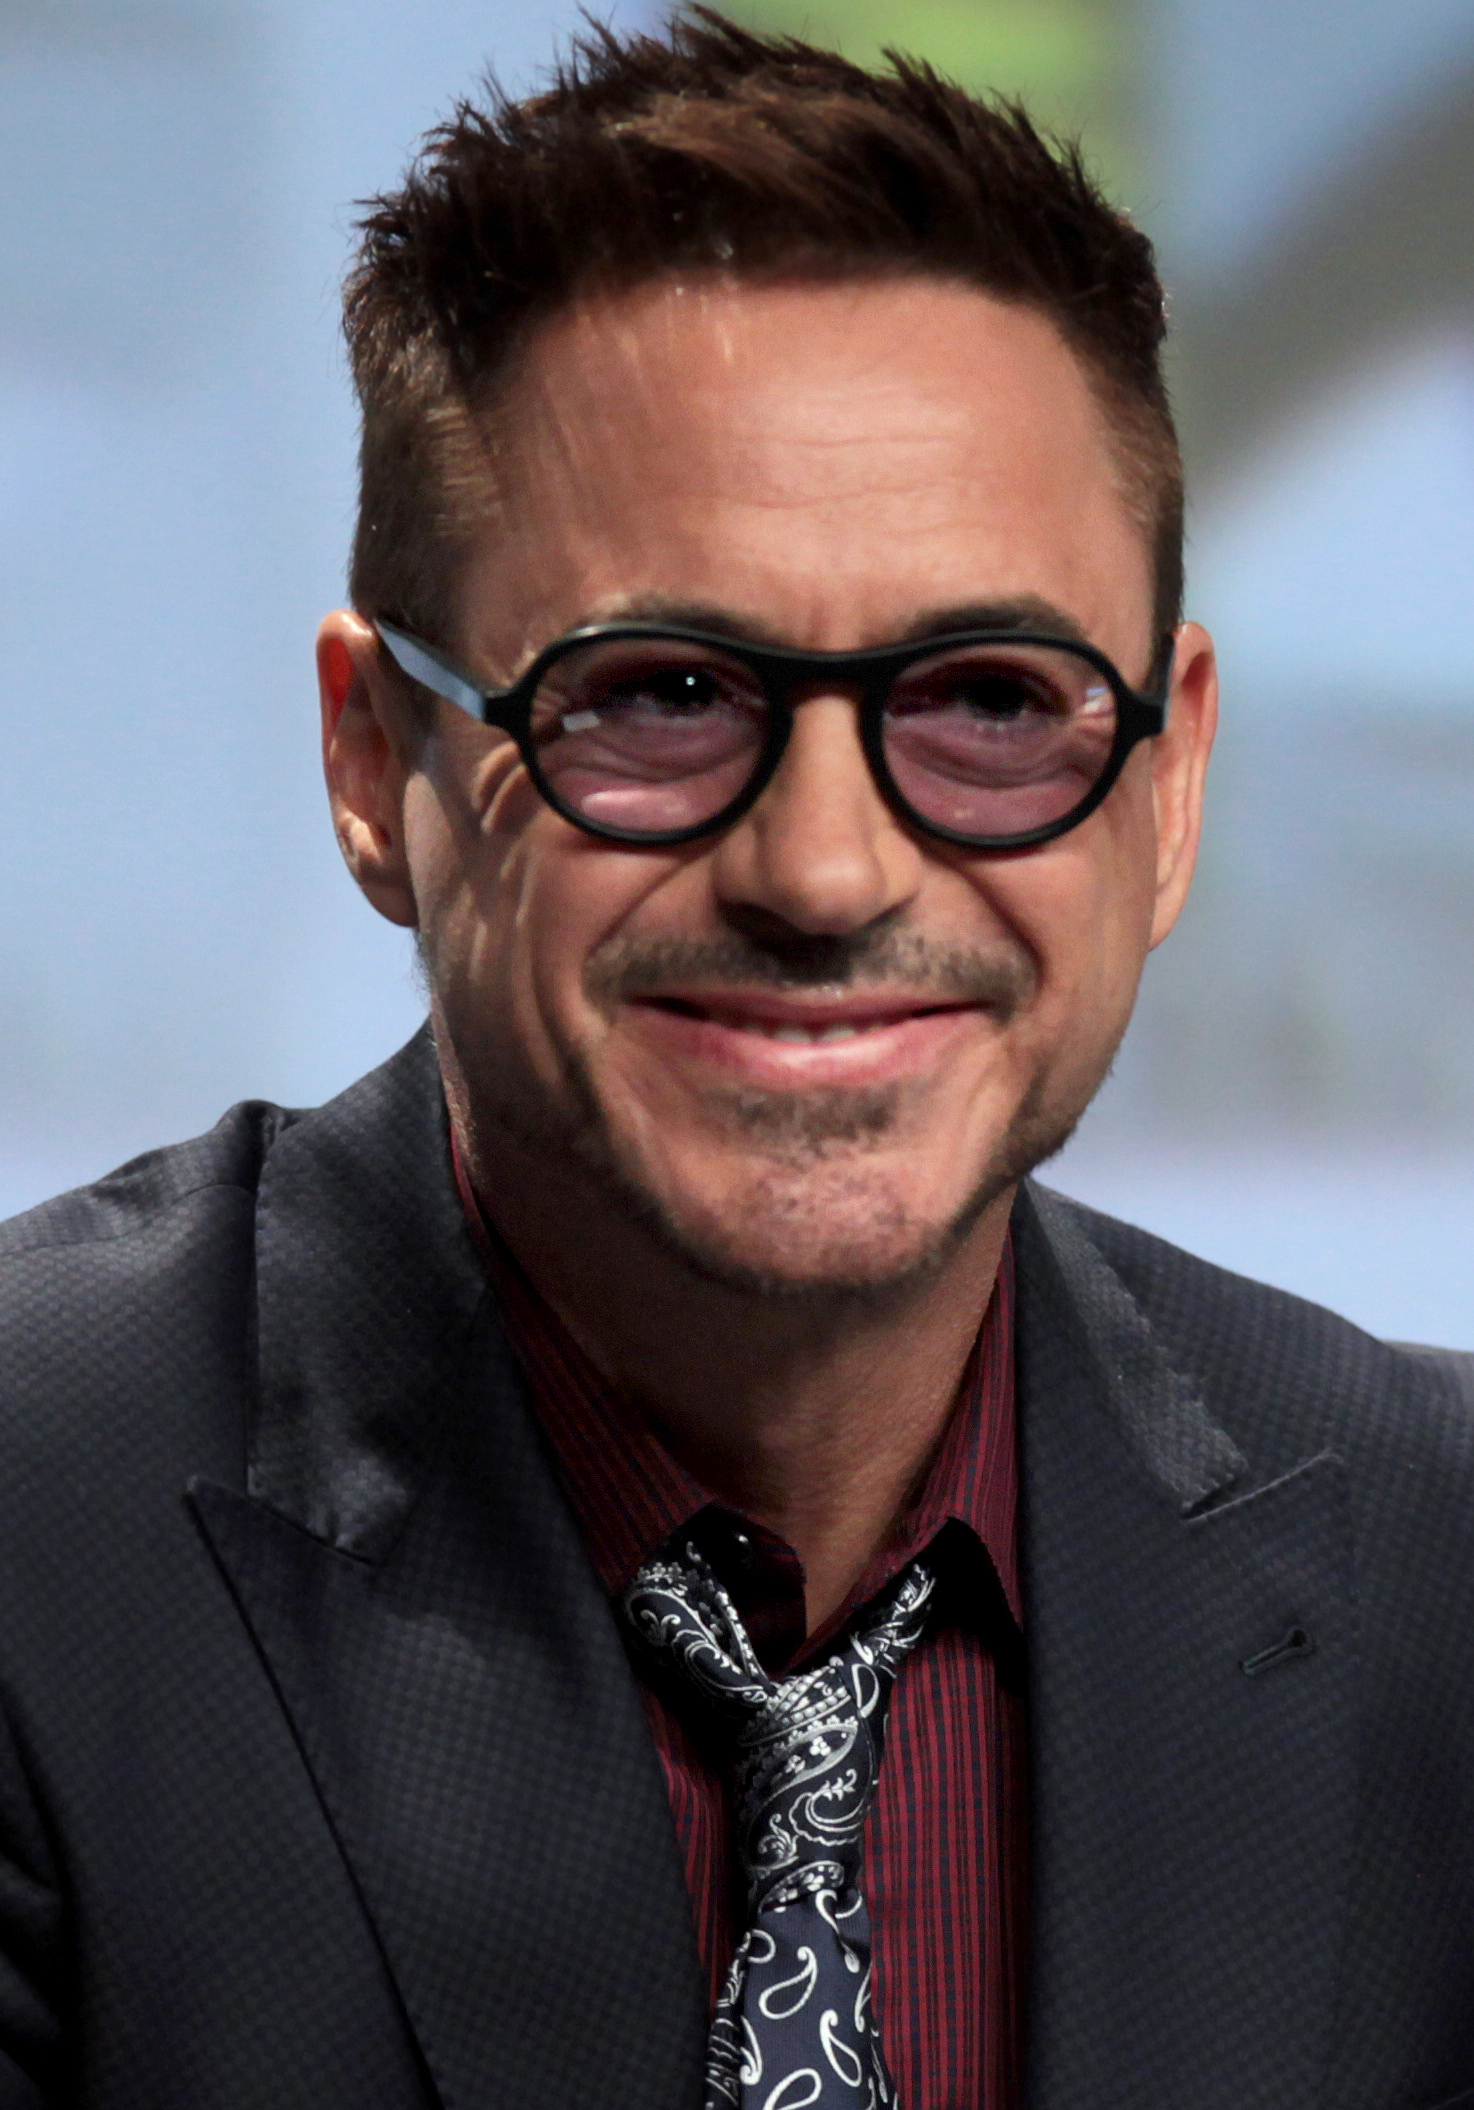 File:Robert Downey, Jr. SDCC 2014 (cropped).jpg ... Robert Downey